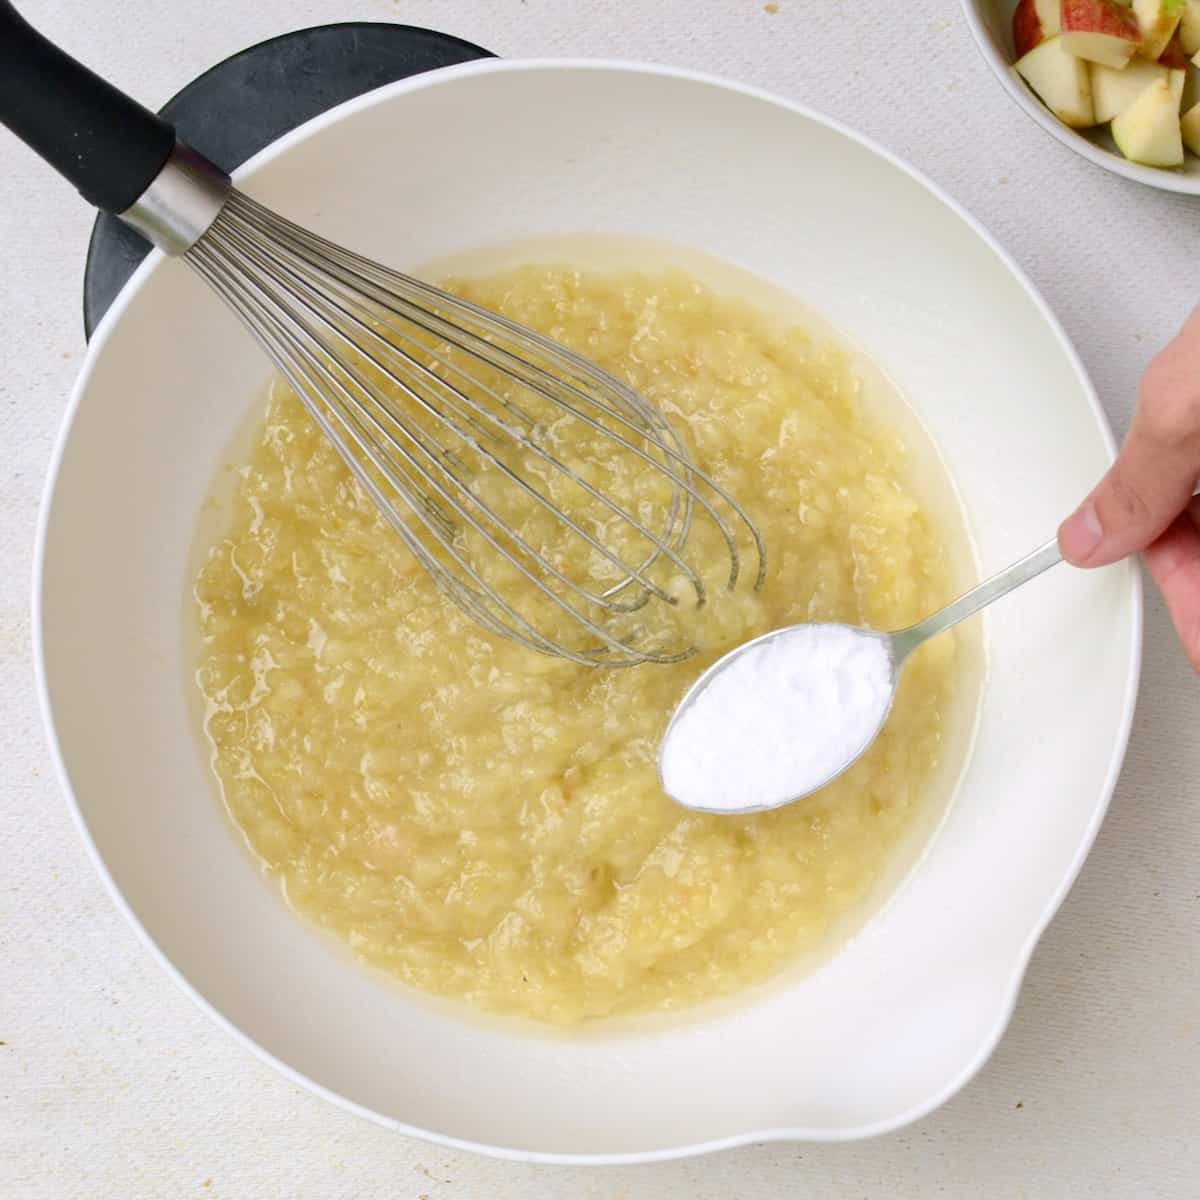 A mixing bowl containing apple, sugar and oil, with a spoonful of baking soda about to be added in.